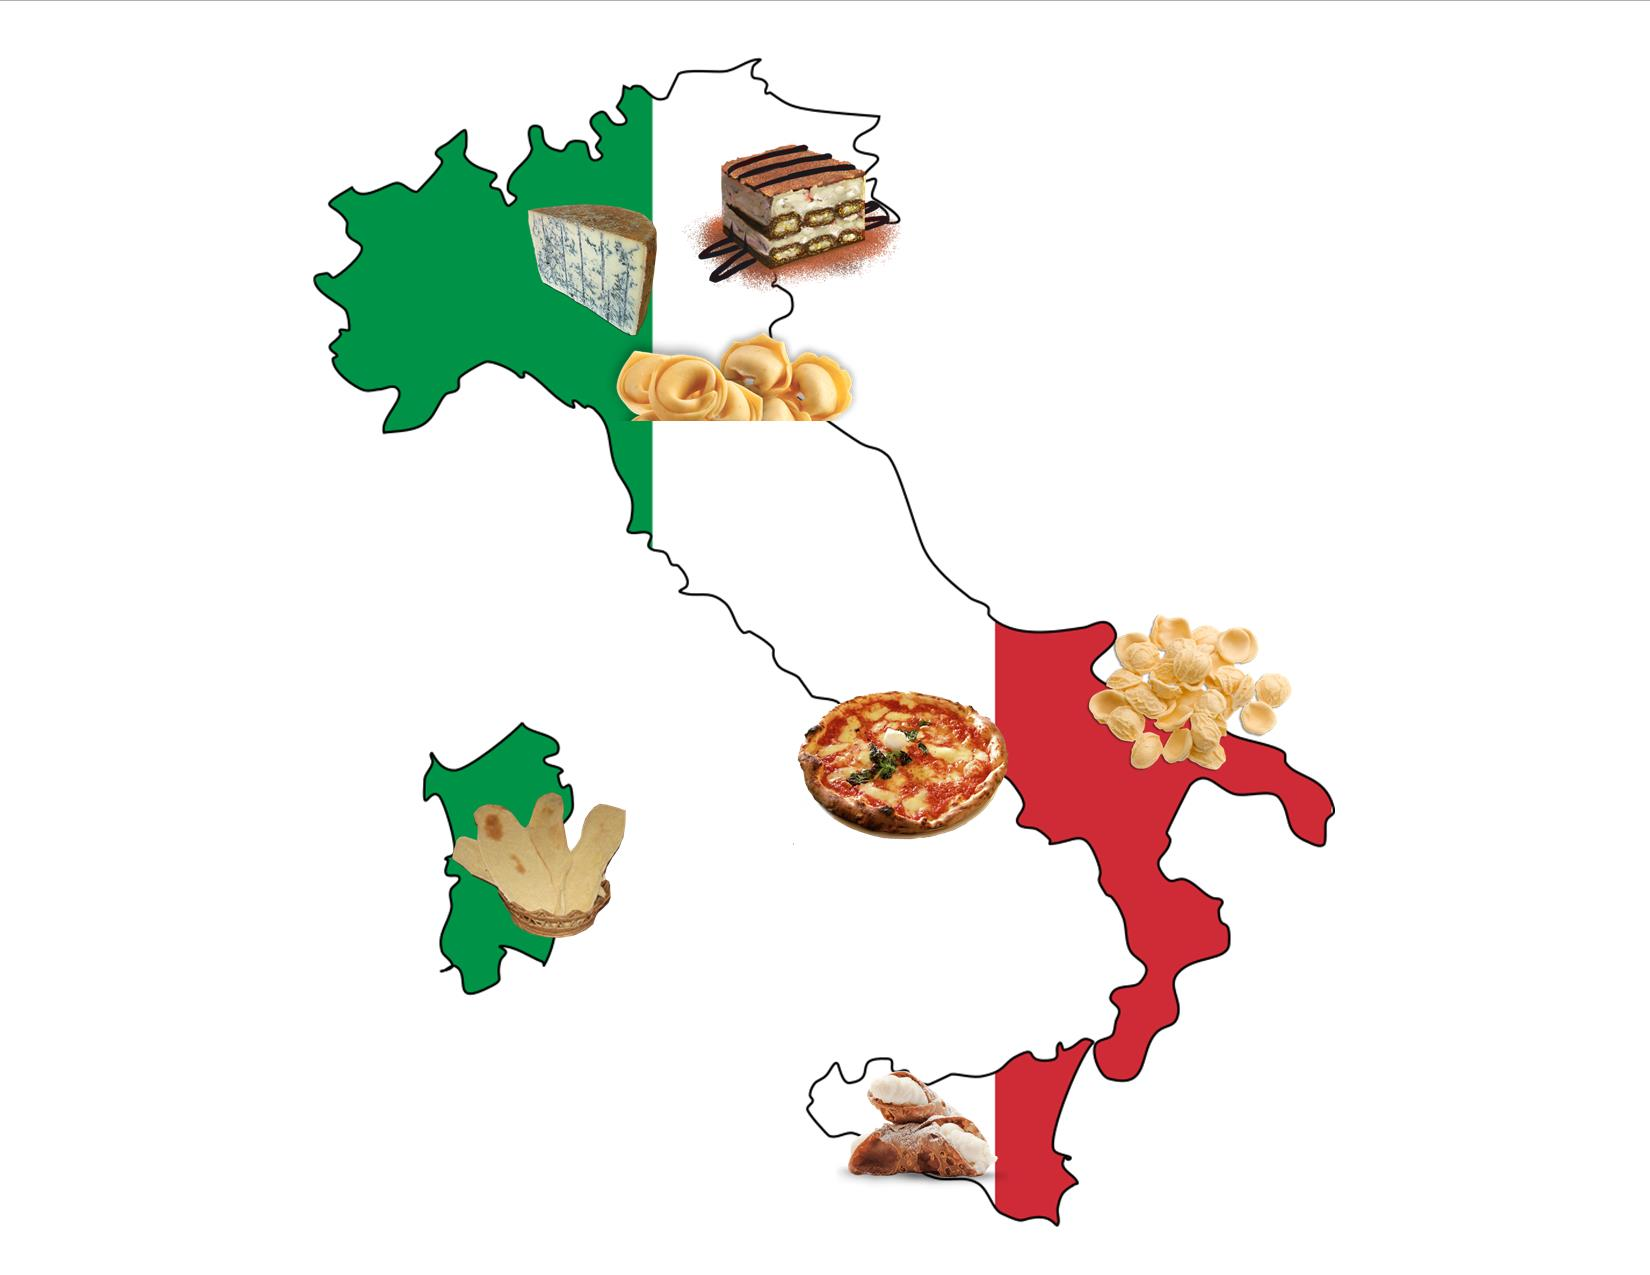 FOOD TOUR OF ITALY EXPLORE THE TASTE OF THE NORTH & THE SOUTH